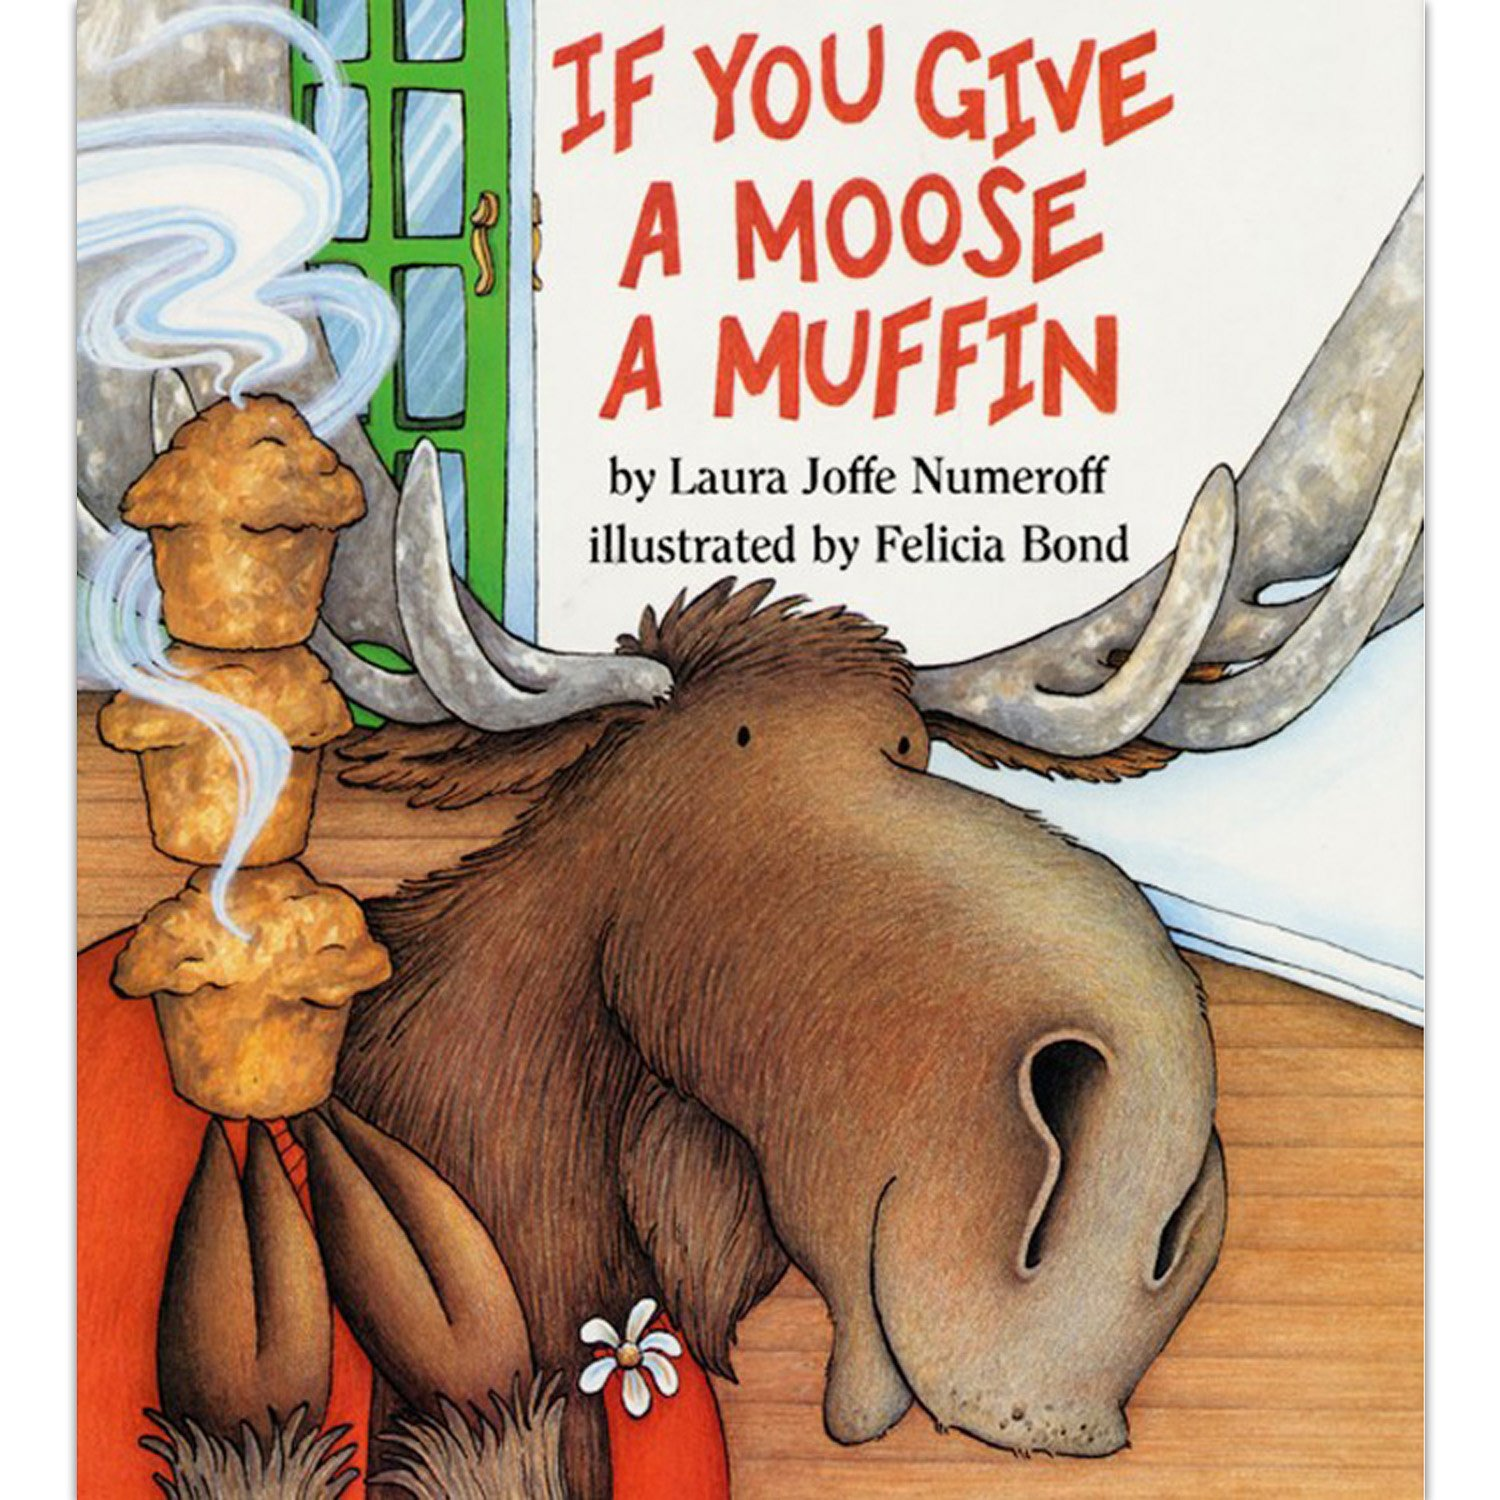 Muffins clipart if you give a moose a muffin. Laura numeroff felicia bond